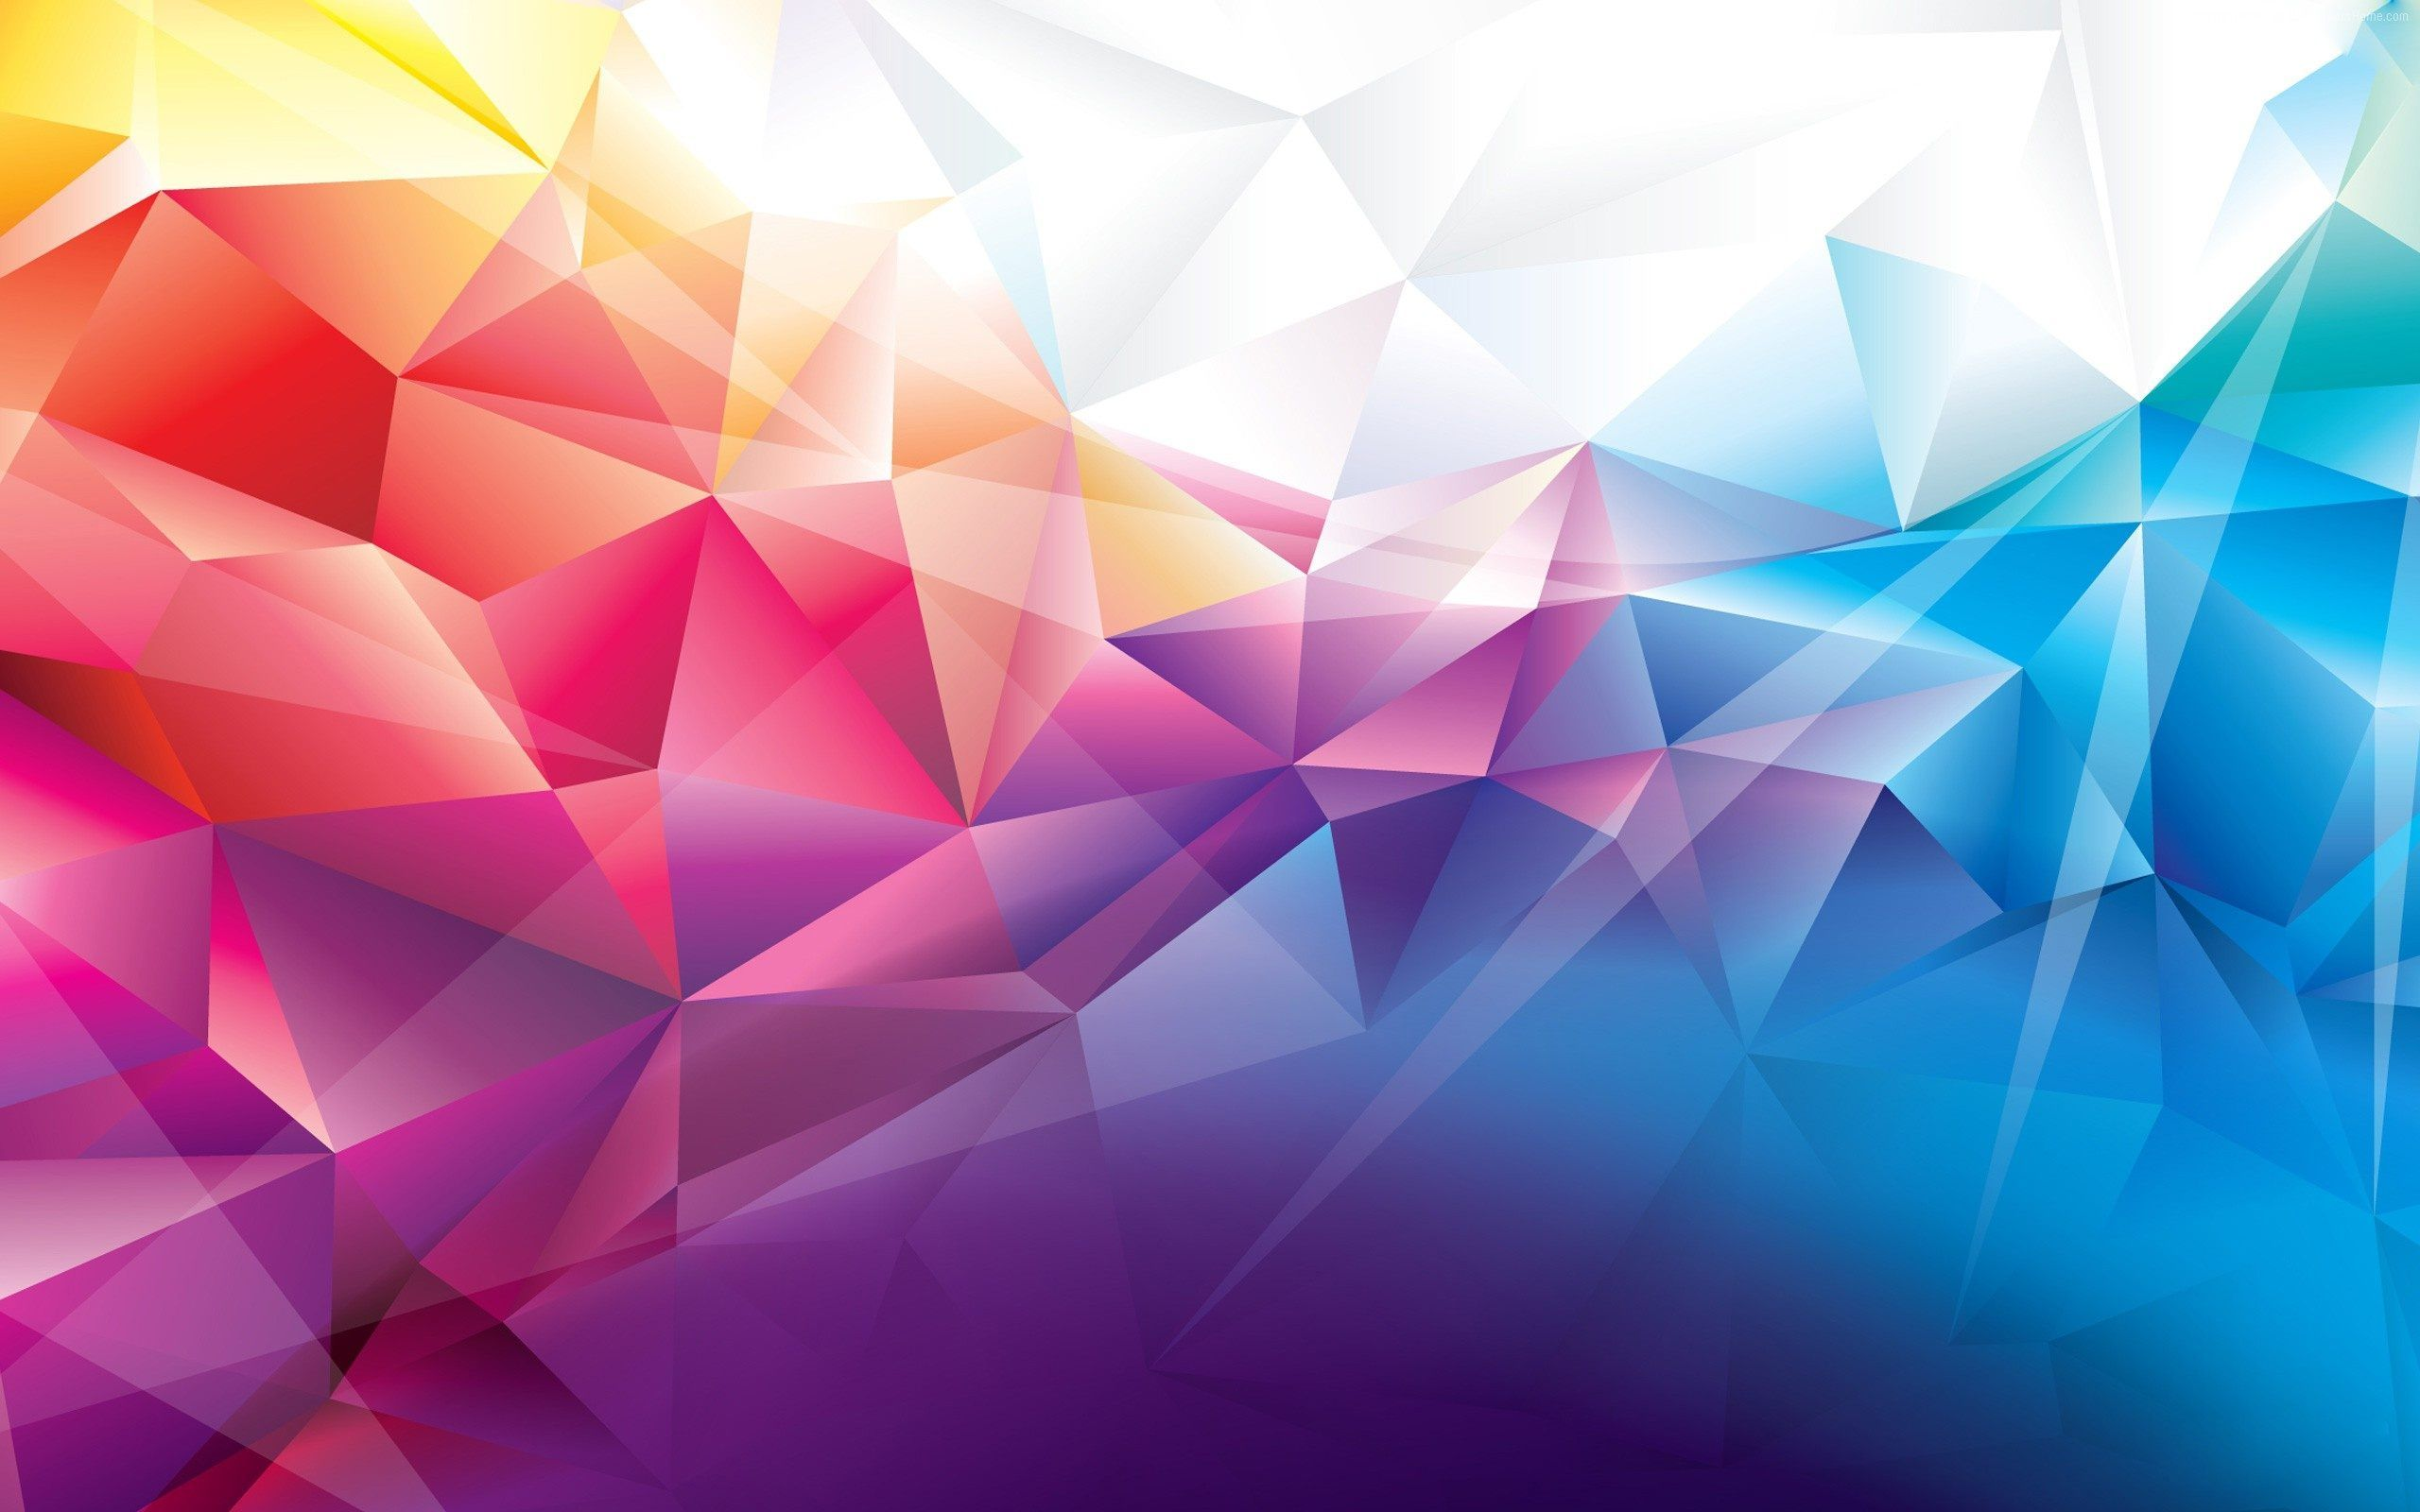 polygon shape abstract design wallpaper for desktop and mobile in